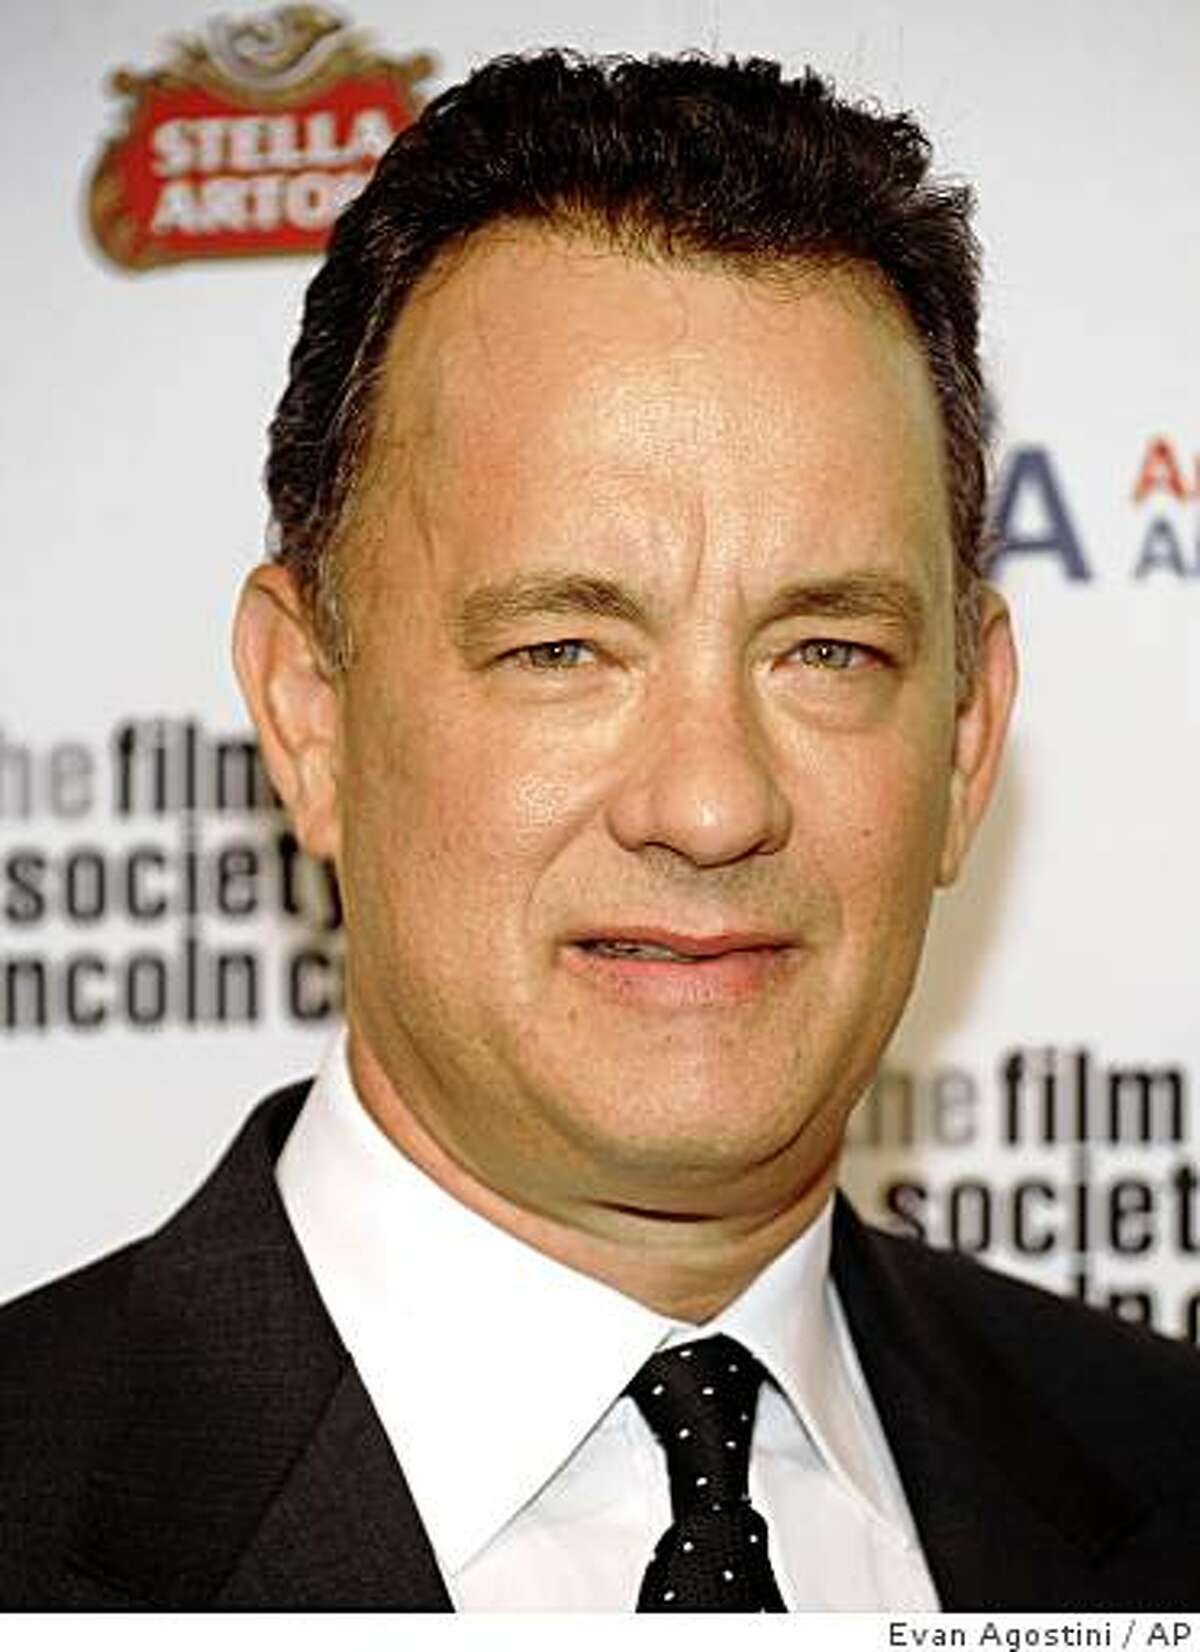 In this April 27, 2009 file photo, Tom Hanks attends The Film Society of Lincoln Center gala tribute to honoring him at Alice Tully Hall in New York.